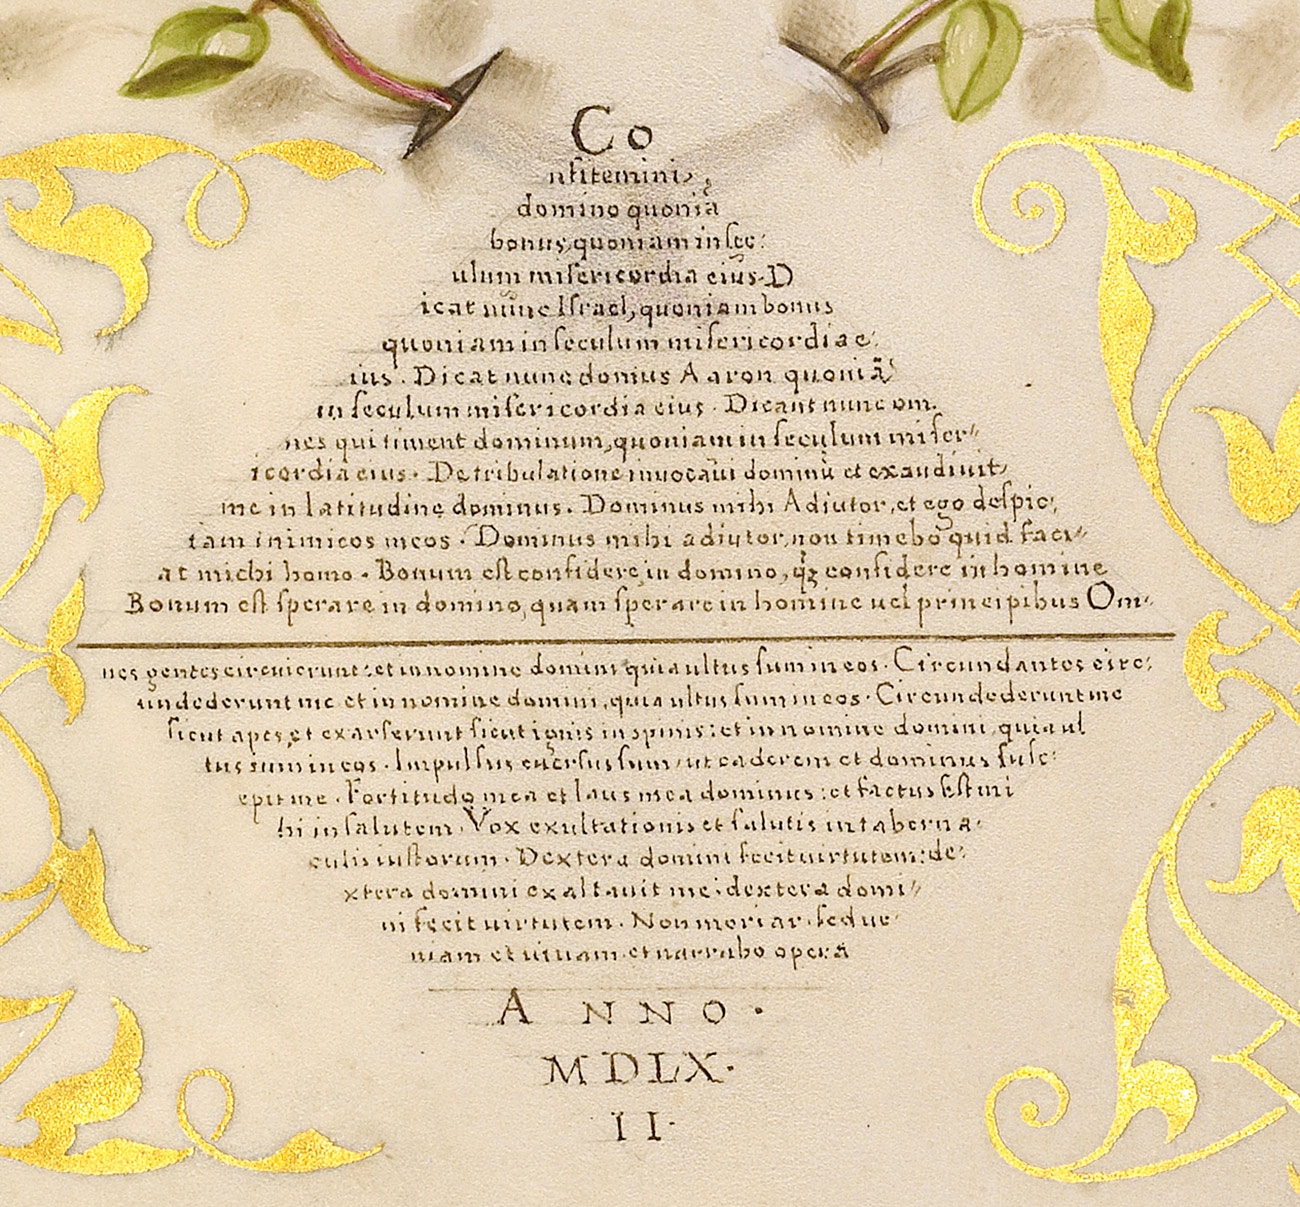 Detail of a manuscript page showing precise calligraphy in a diamond-shaped pattern